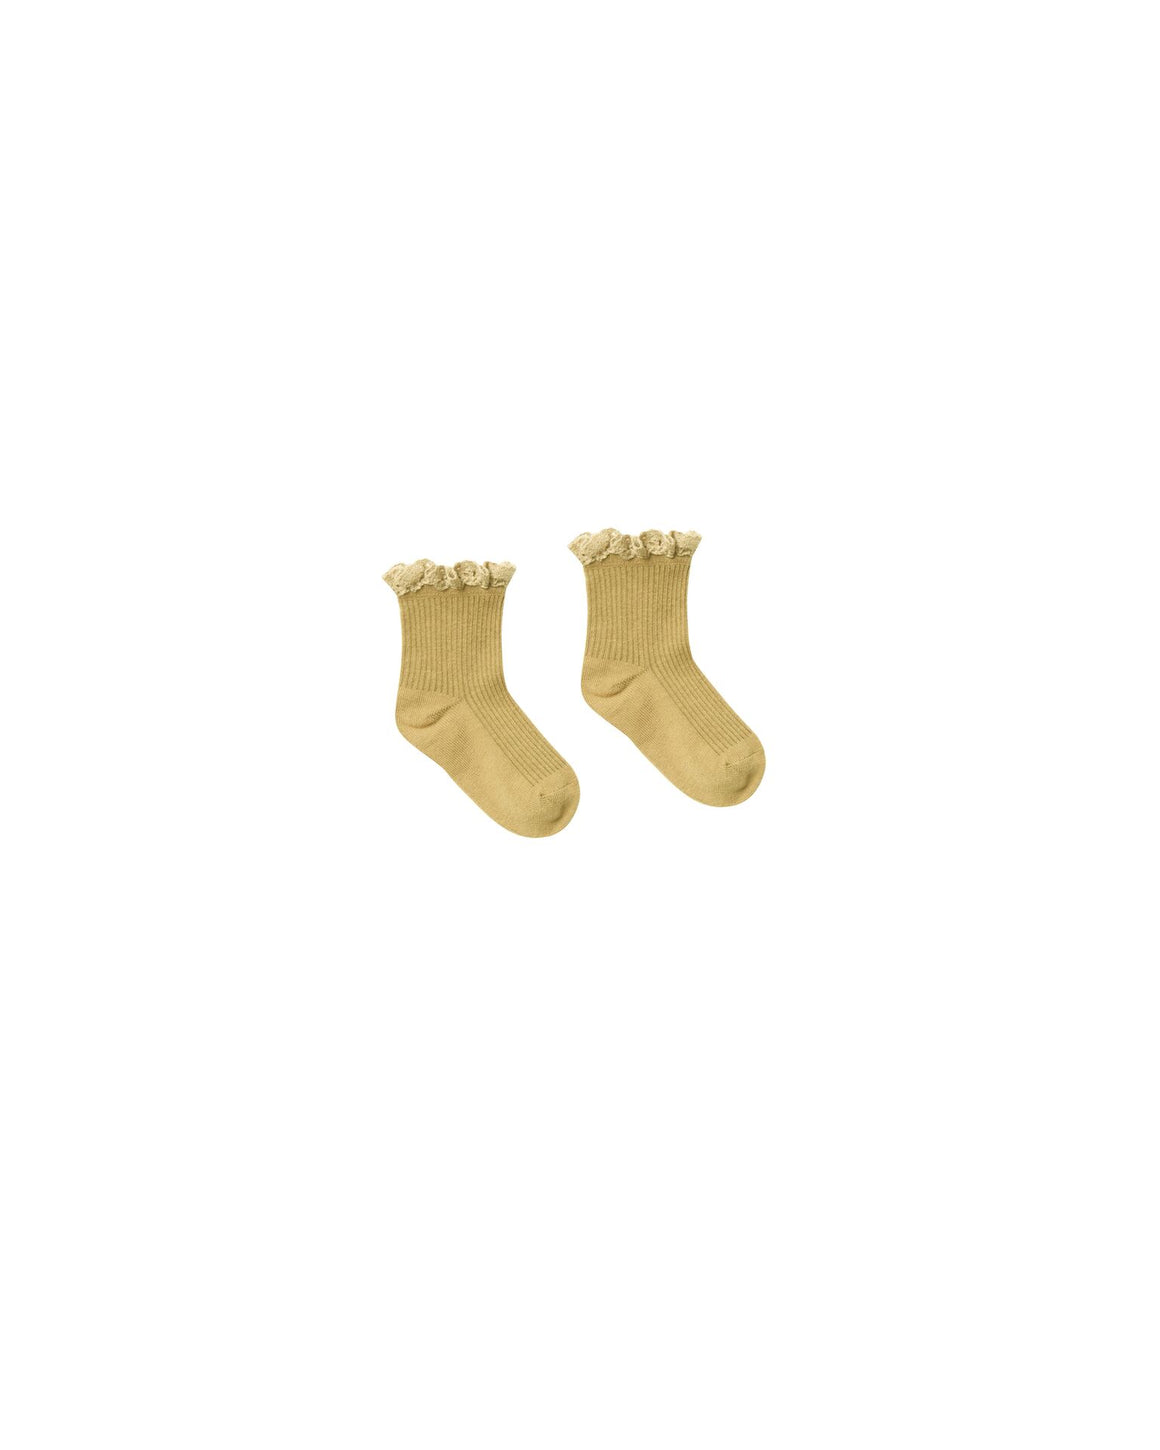 Children's lace trim ruffle ankle socks in golden citron yellow.